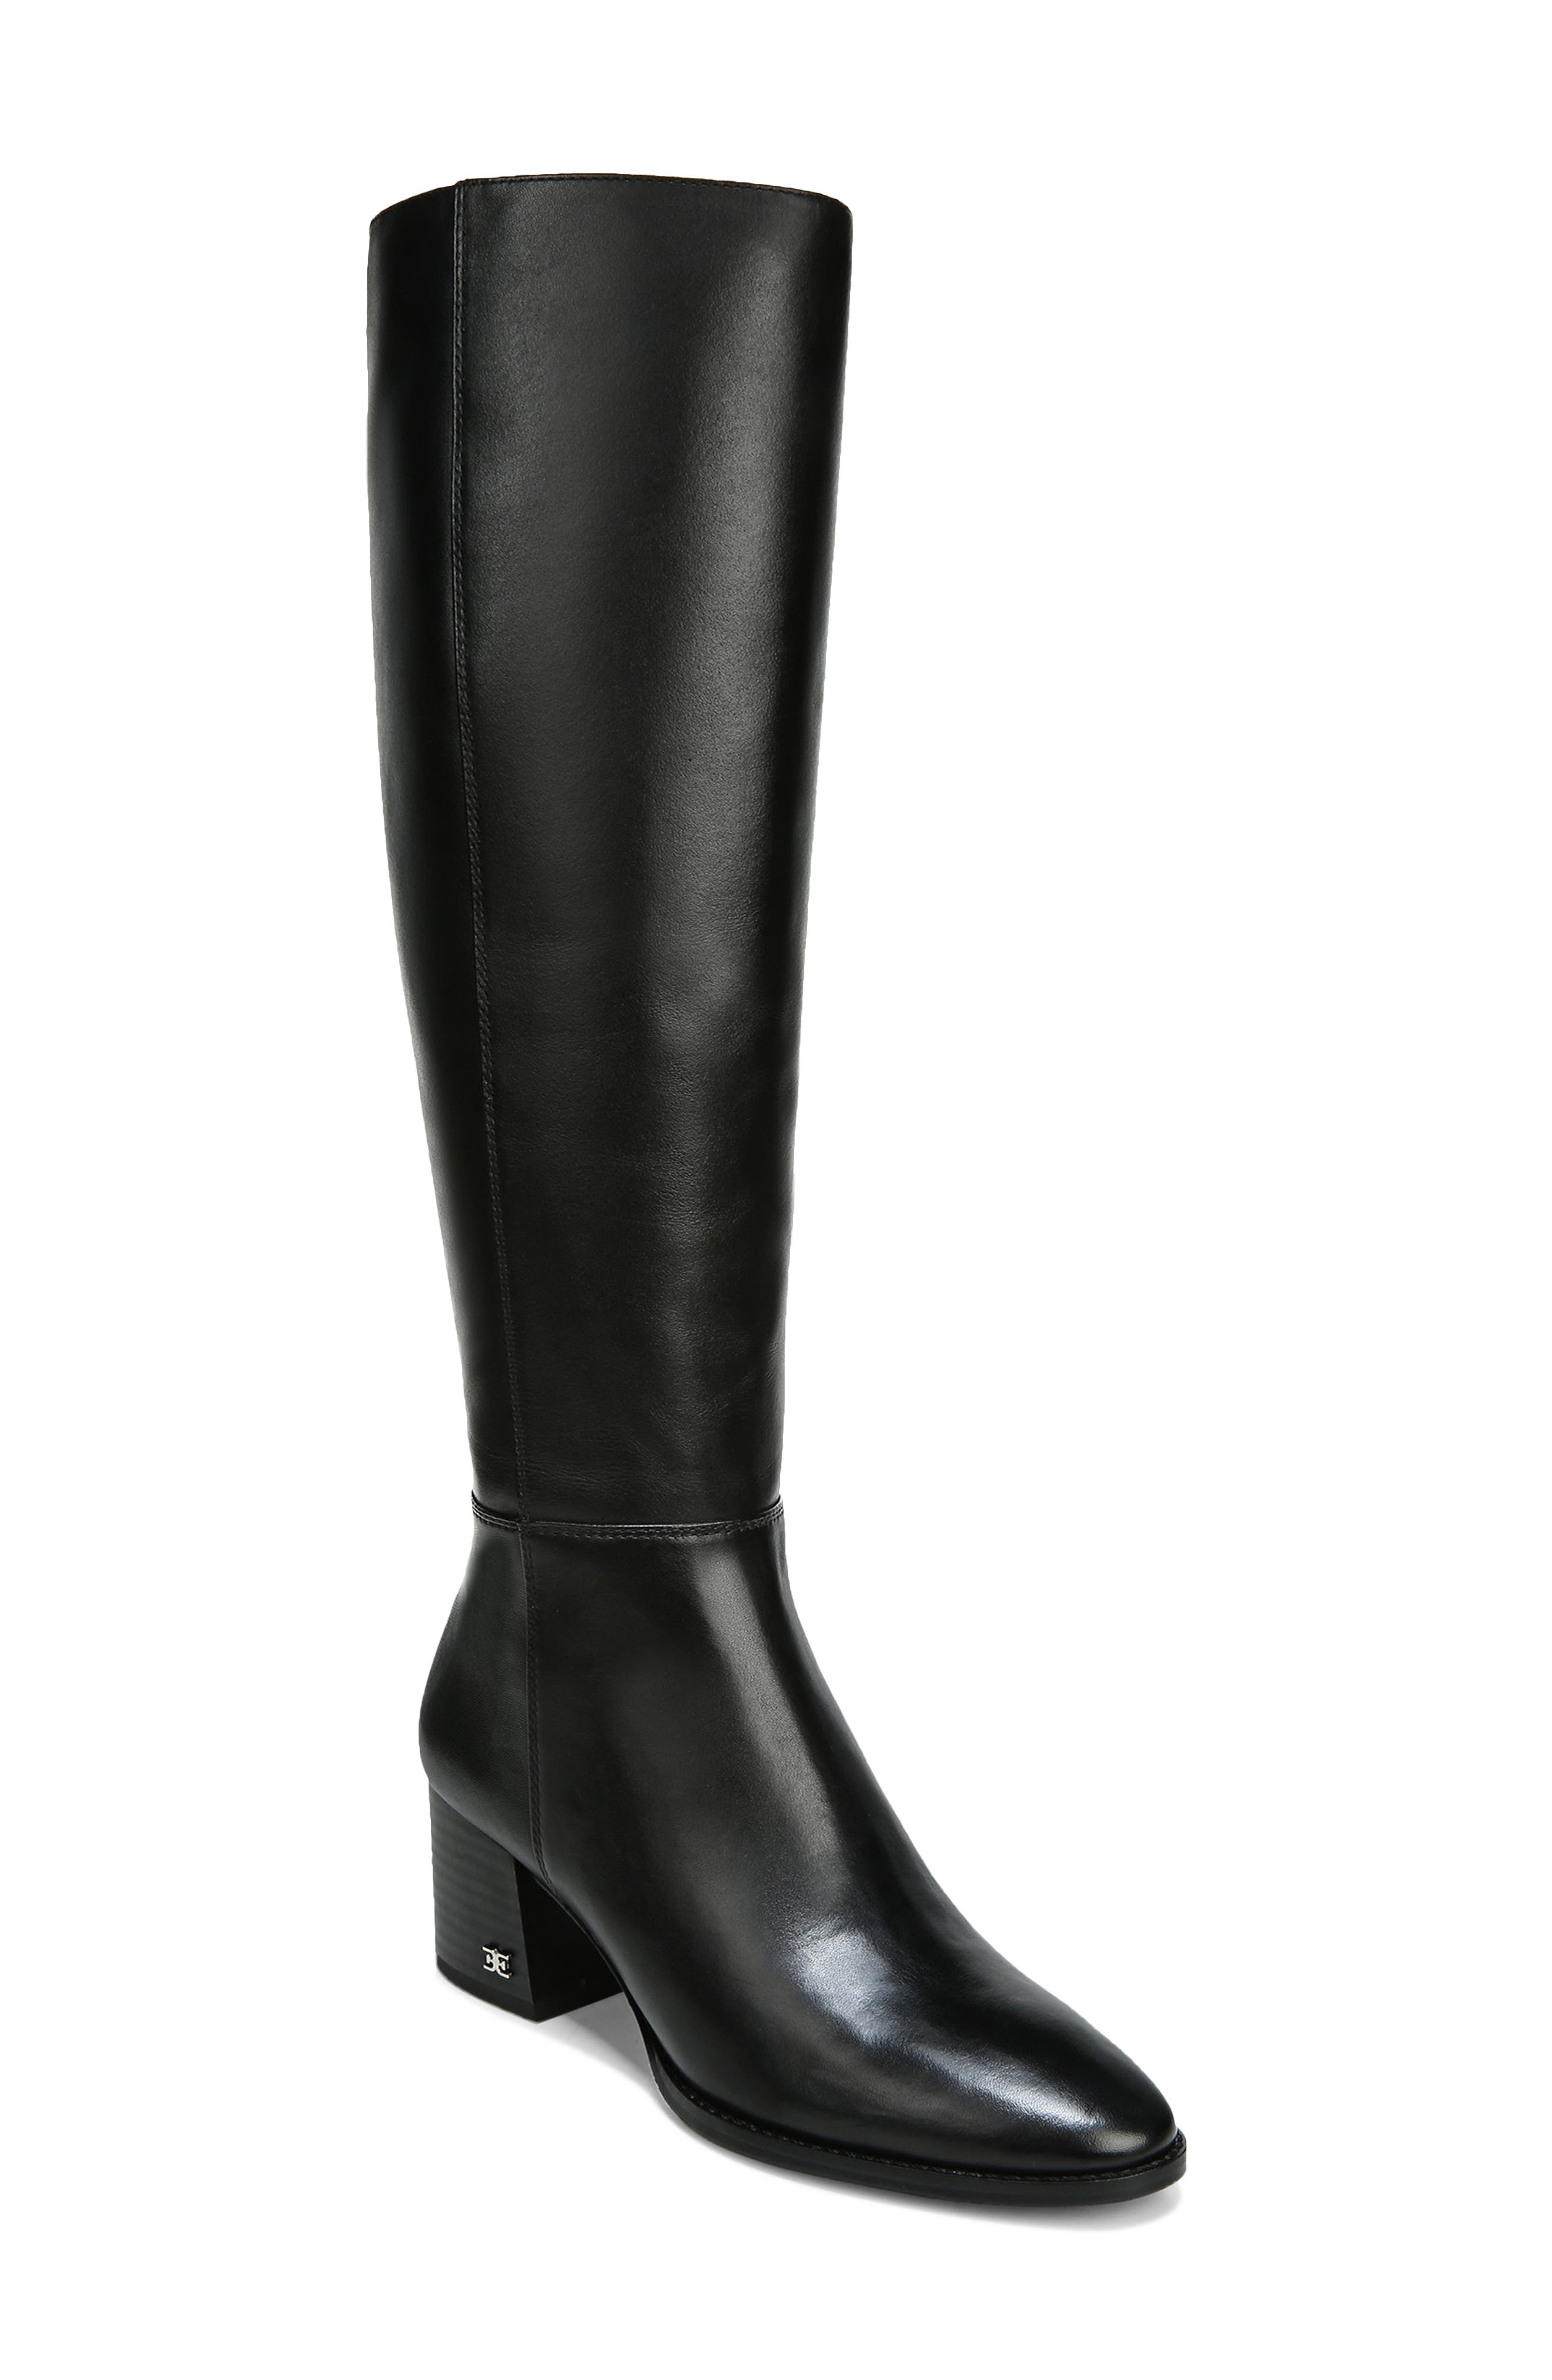 Knee-High Boots for Women   Nordstrom